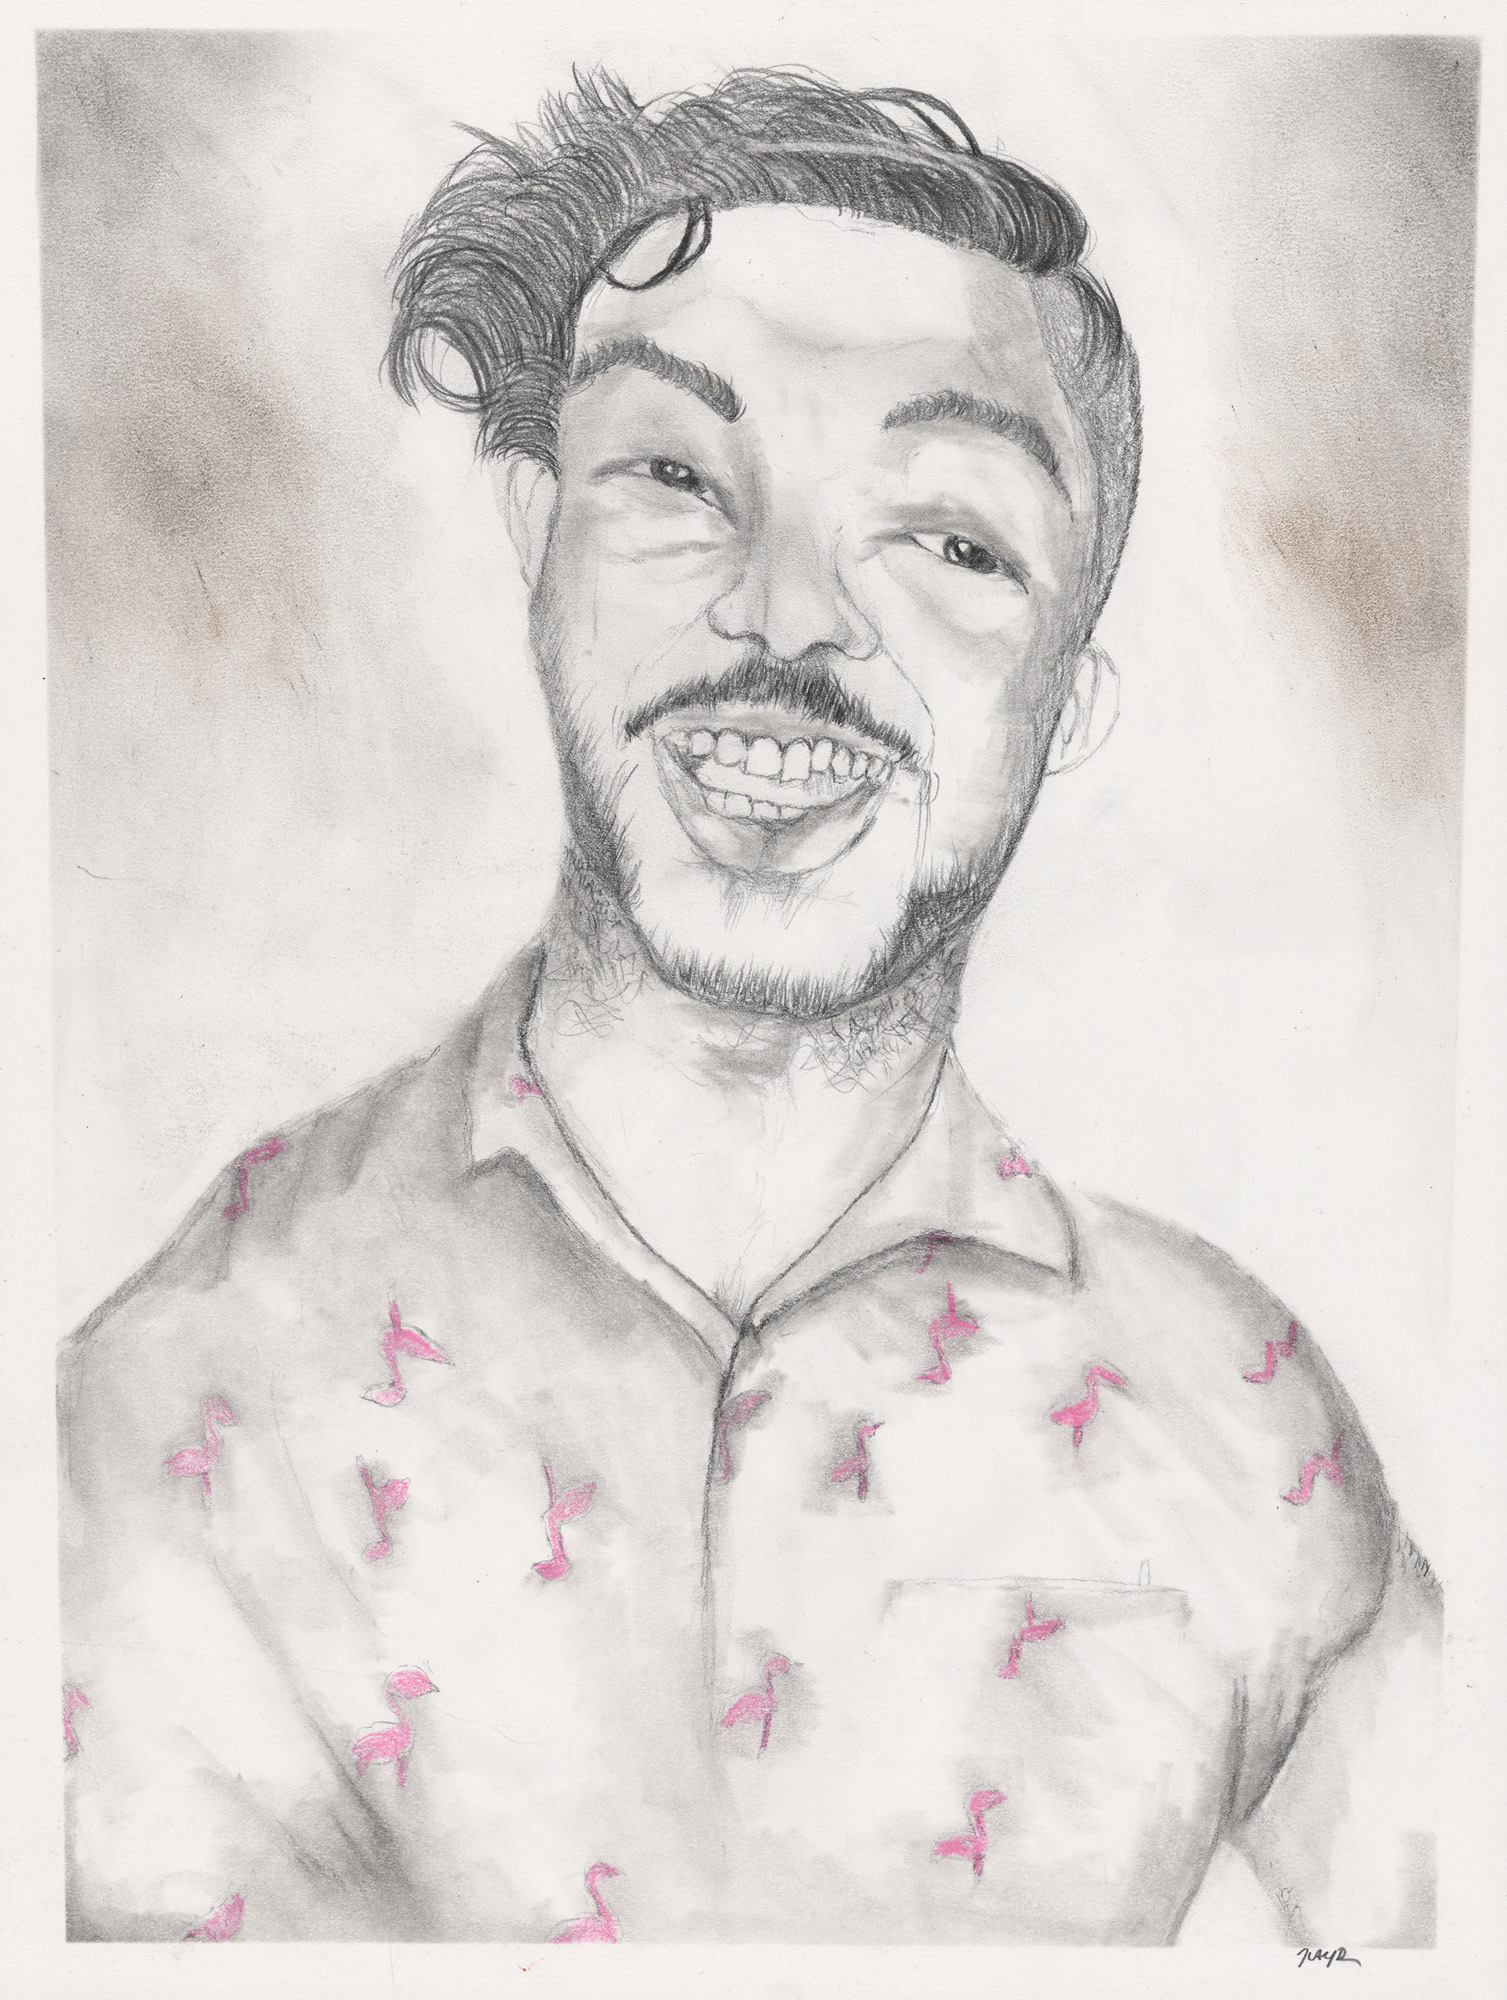 A delicate pencil drawing of the head and shoulders of a young man with short tousled hair and a moustache. His shirt is patterned with pink flamingoes and he smiles broadly.